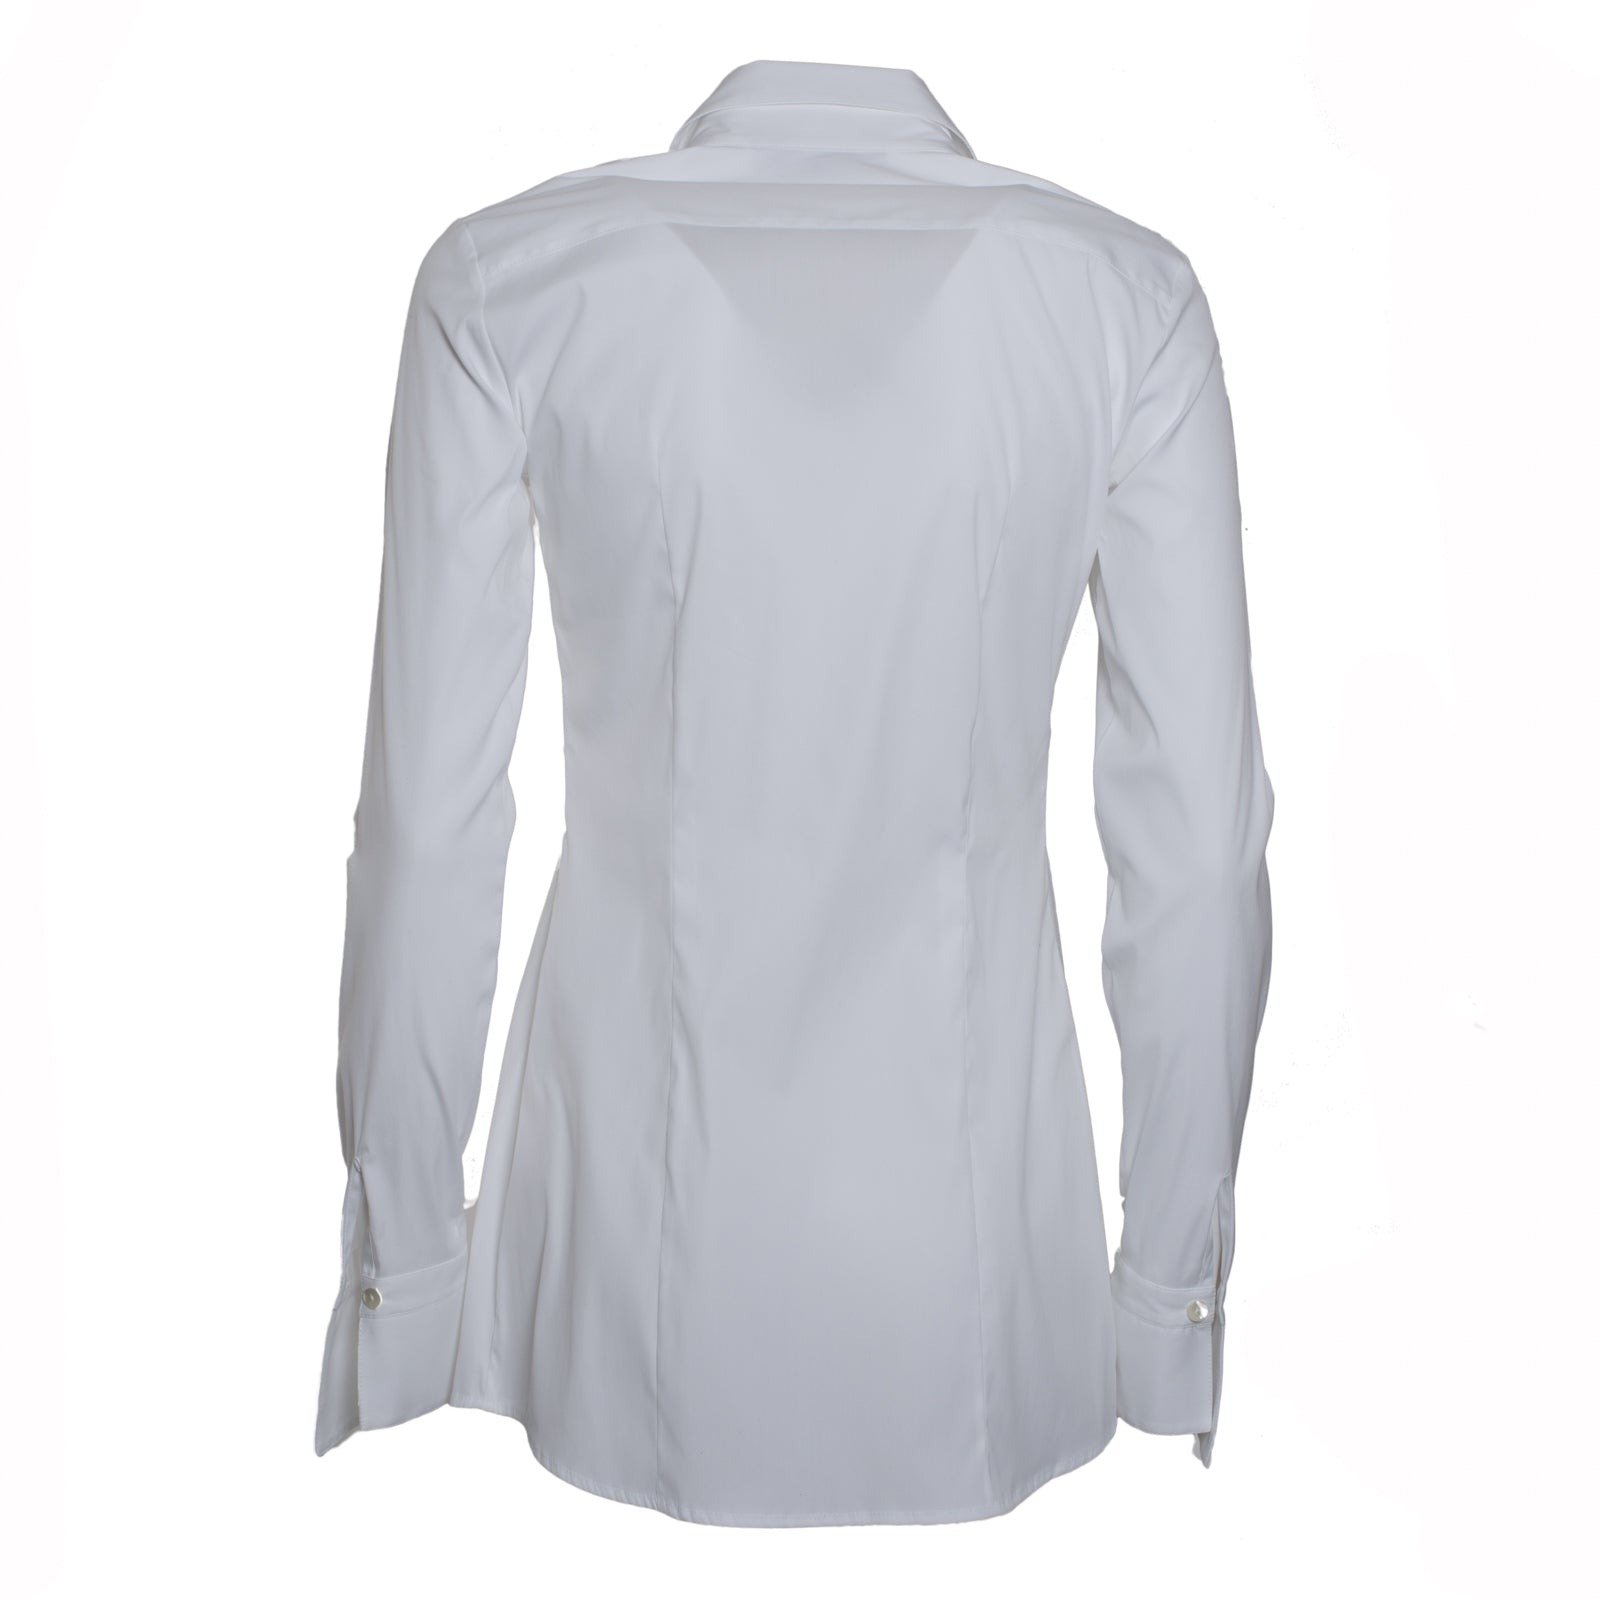 Jennifer Tattanelli crafted in Florence this timeless wardrobe essential, this classic white long-sleeved women shirt is crafted from high quality cotton